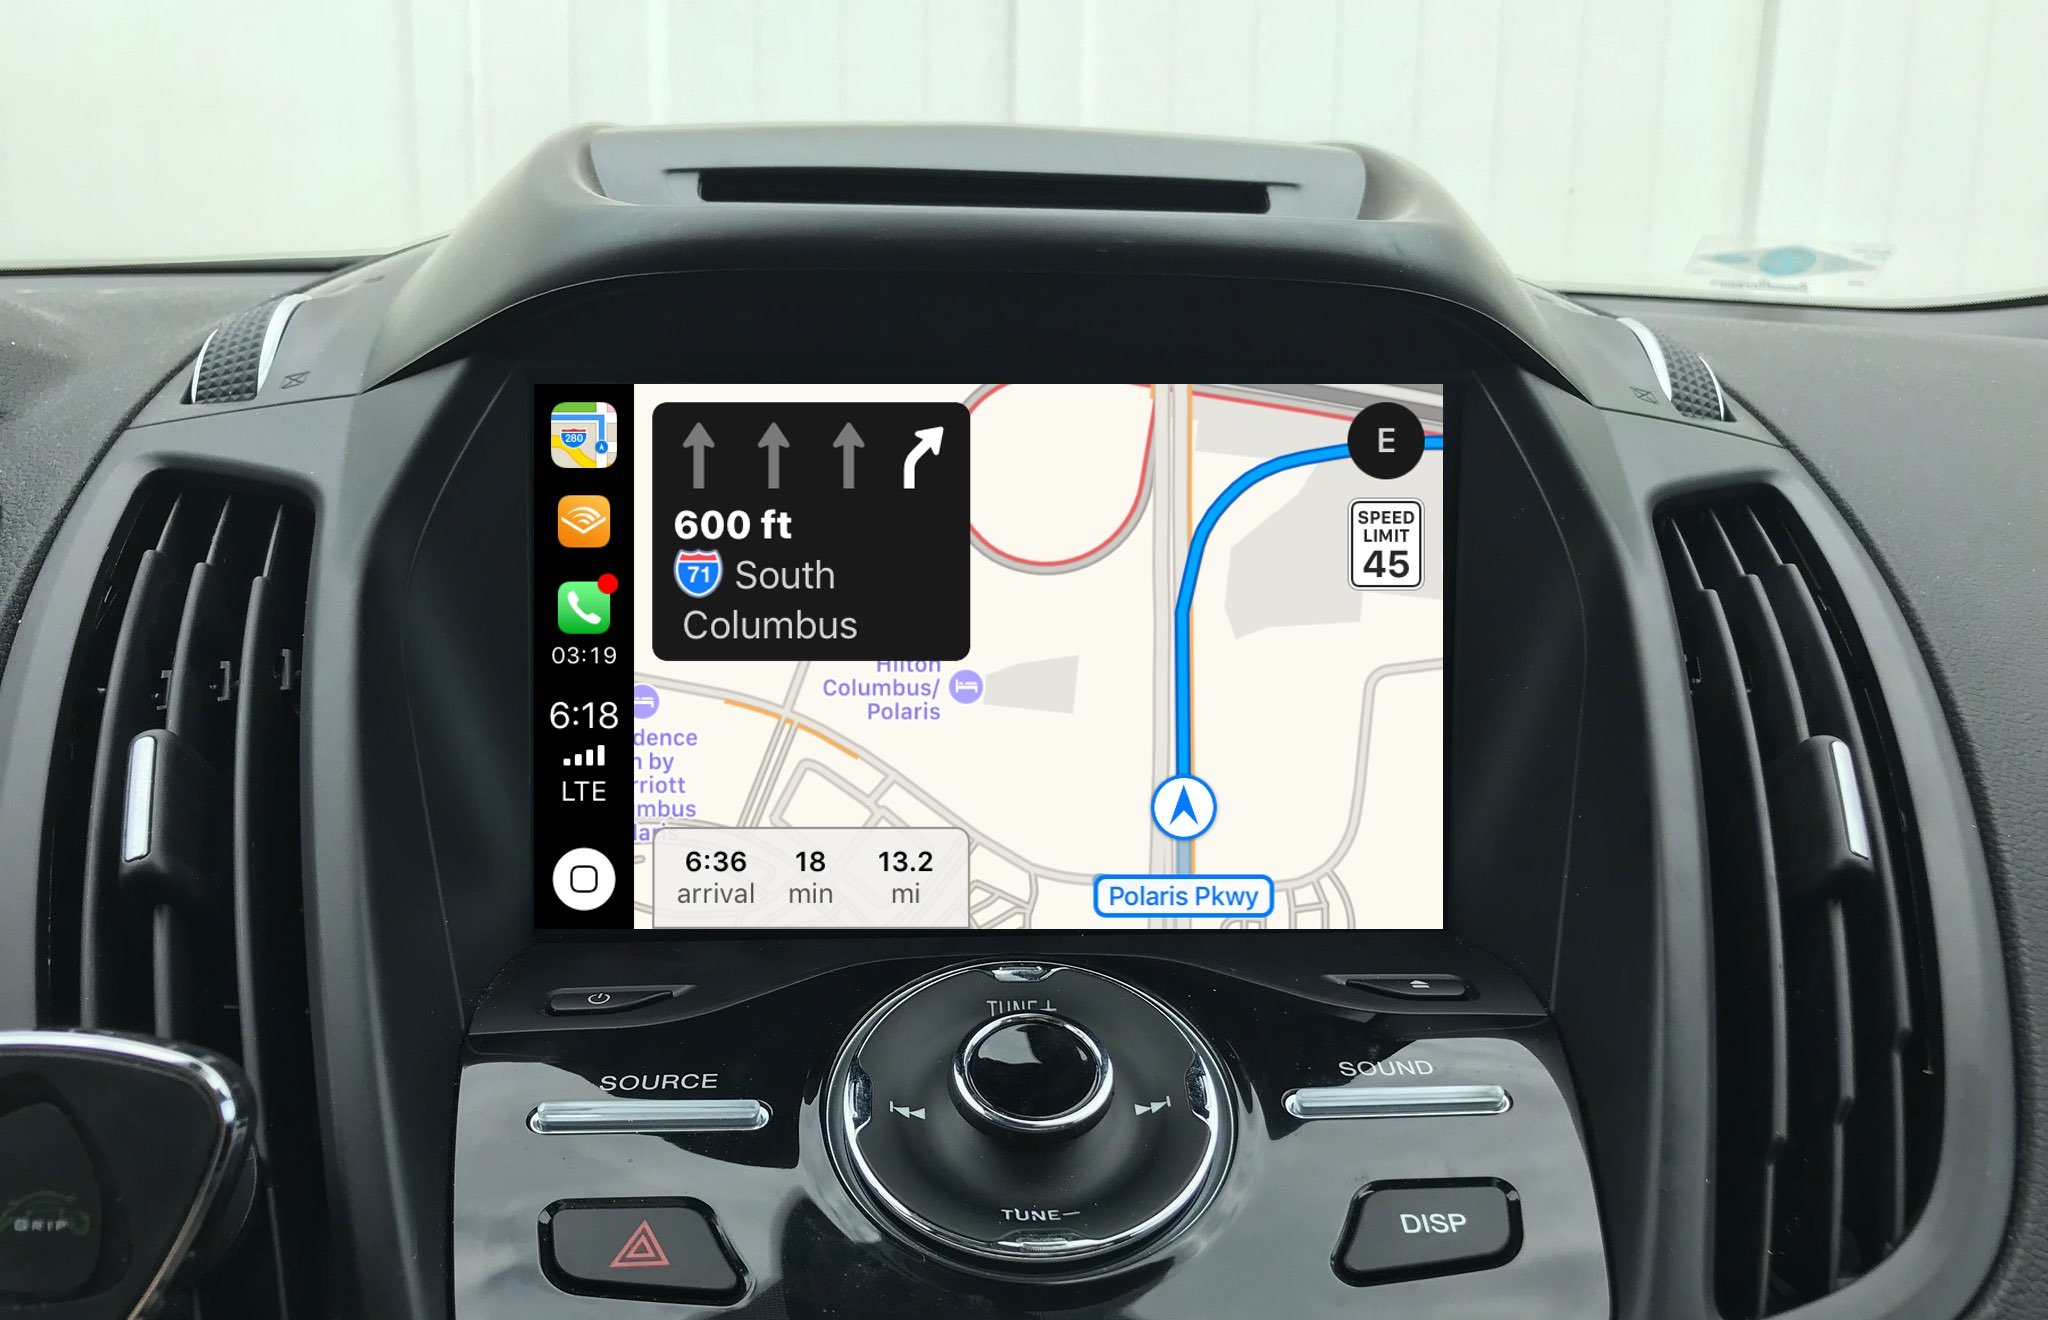 Apple Maps shown running on CarPlay with the lane guidance feature active